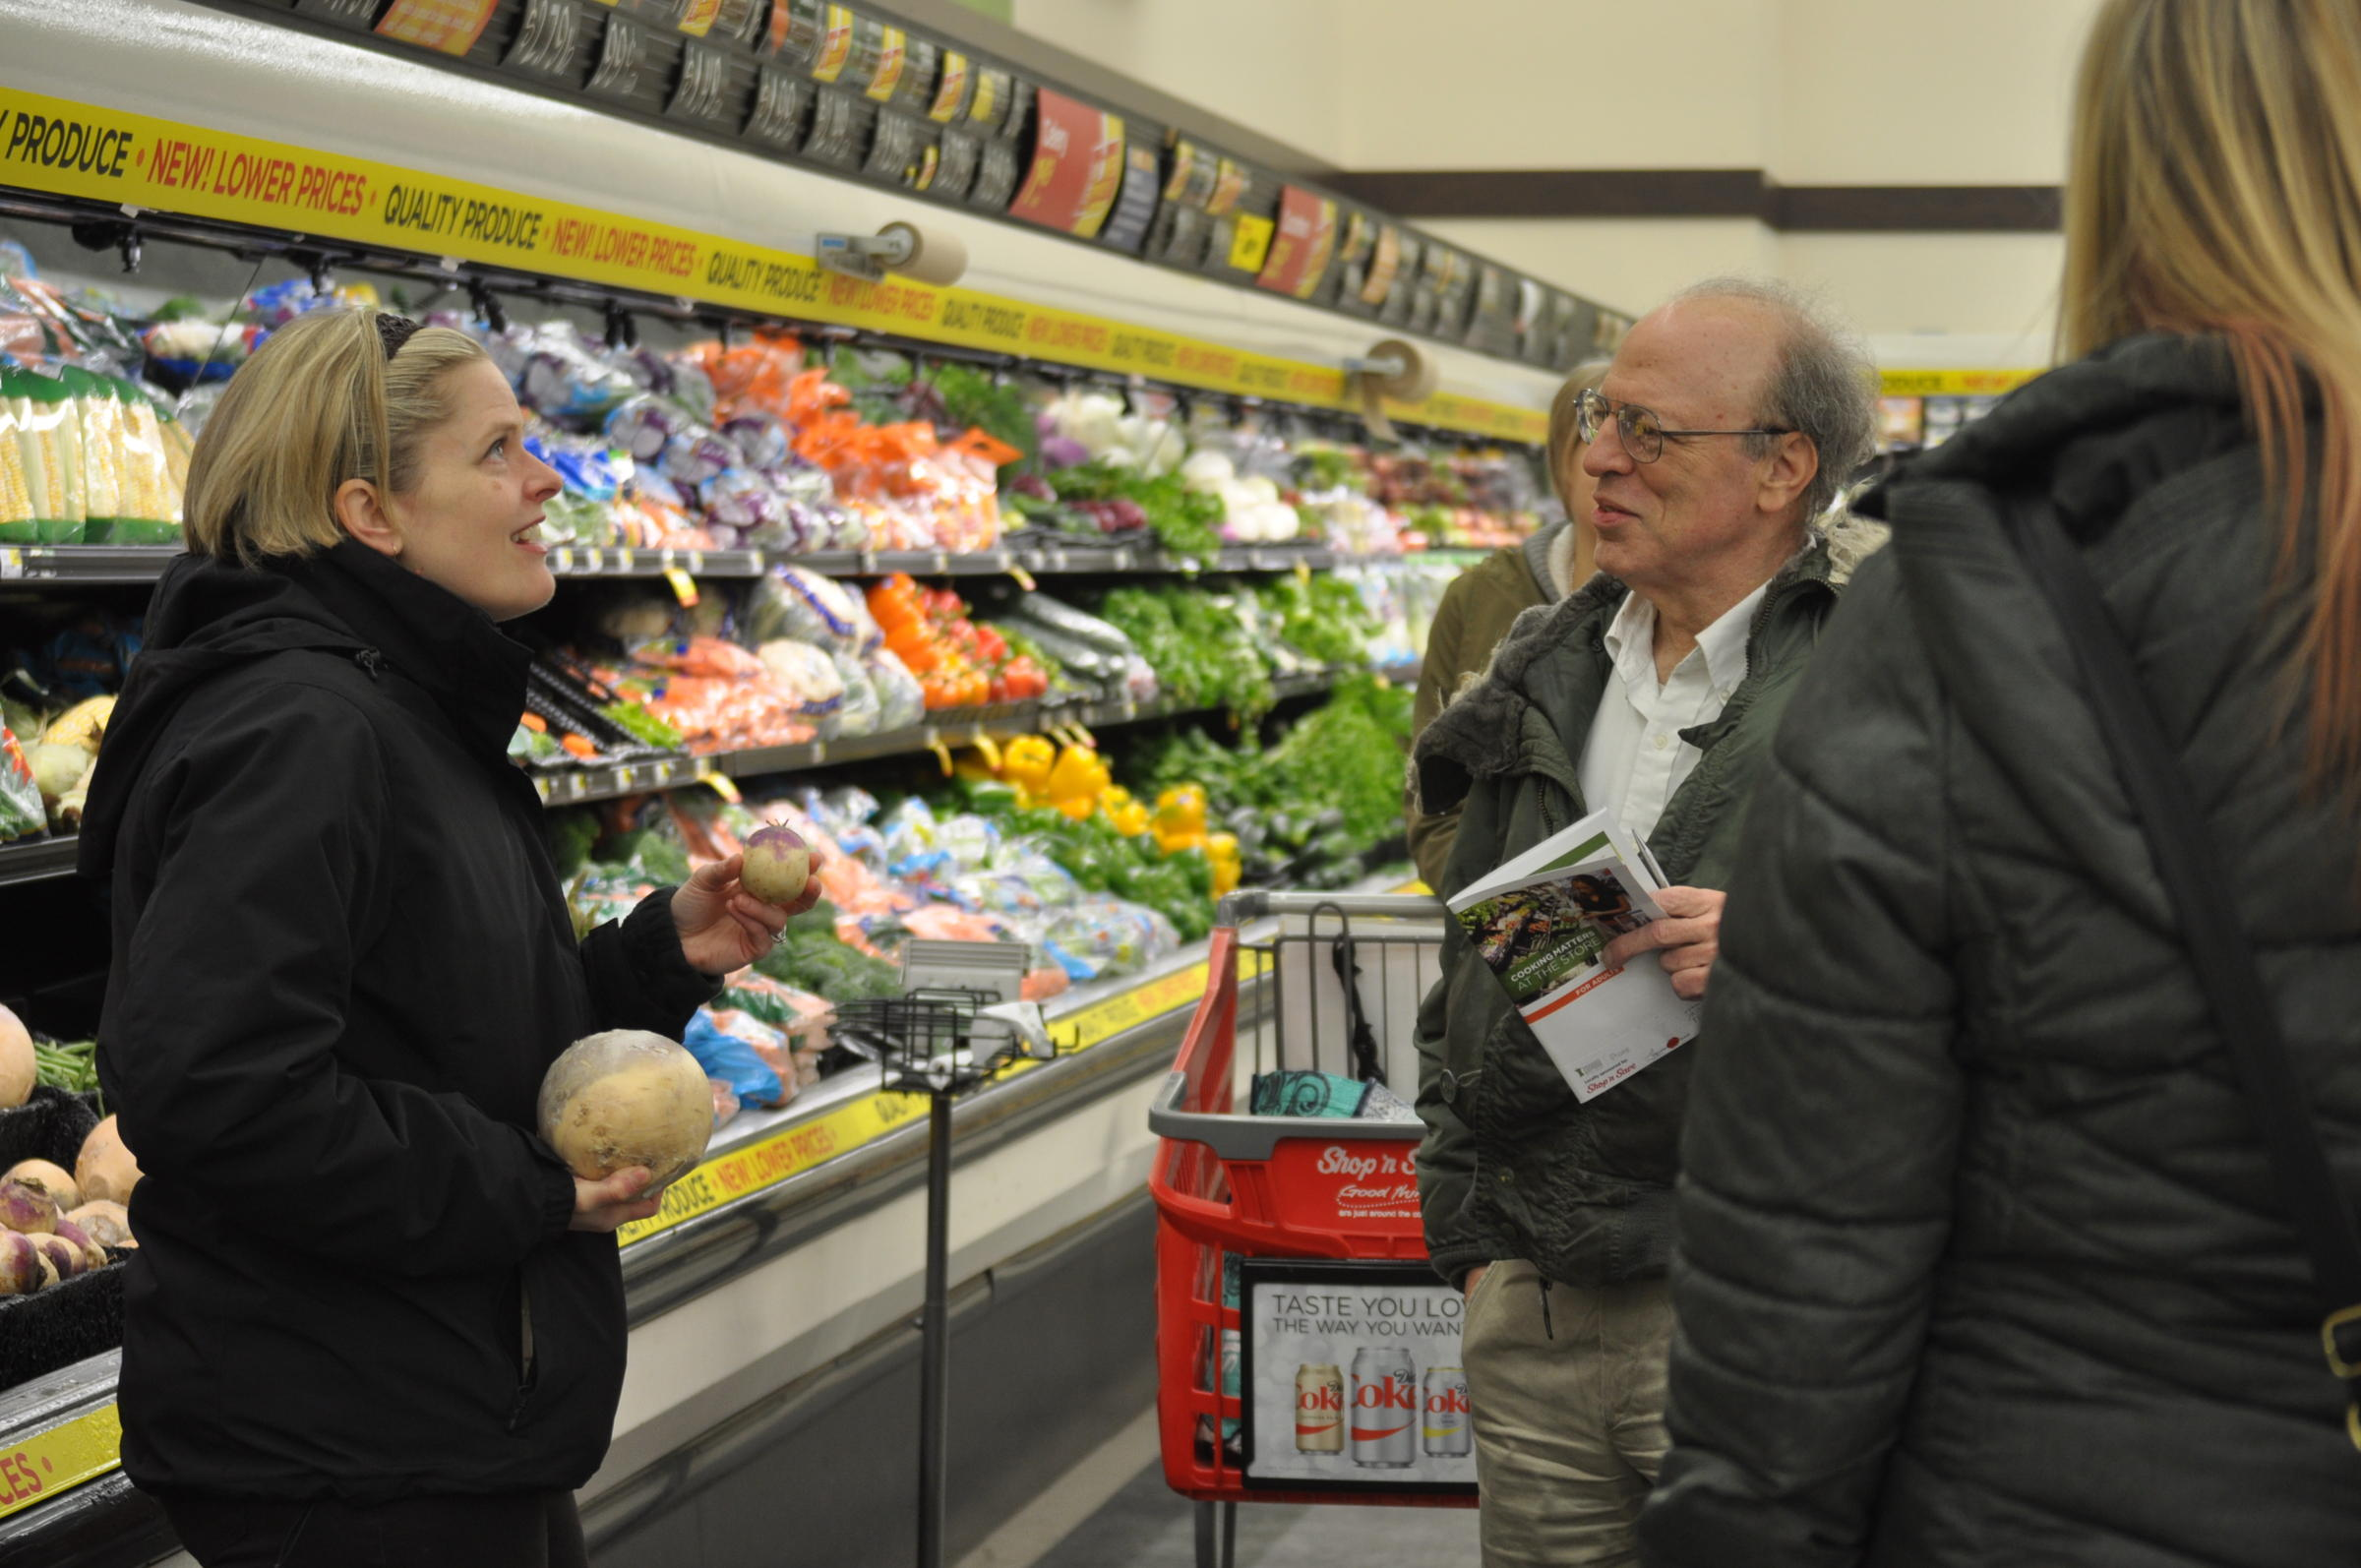 Grocery store seminars teach nutrition on a budget, combat hunger in ...